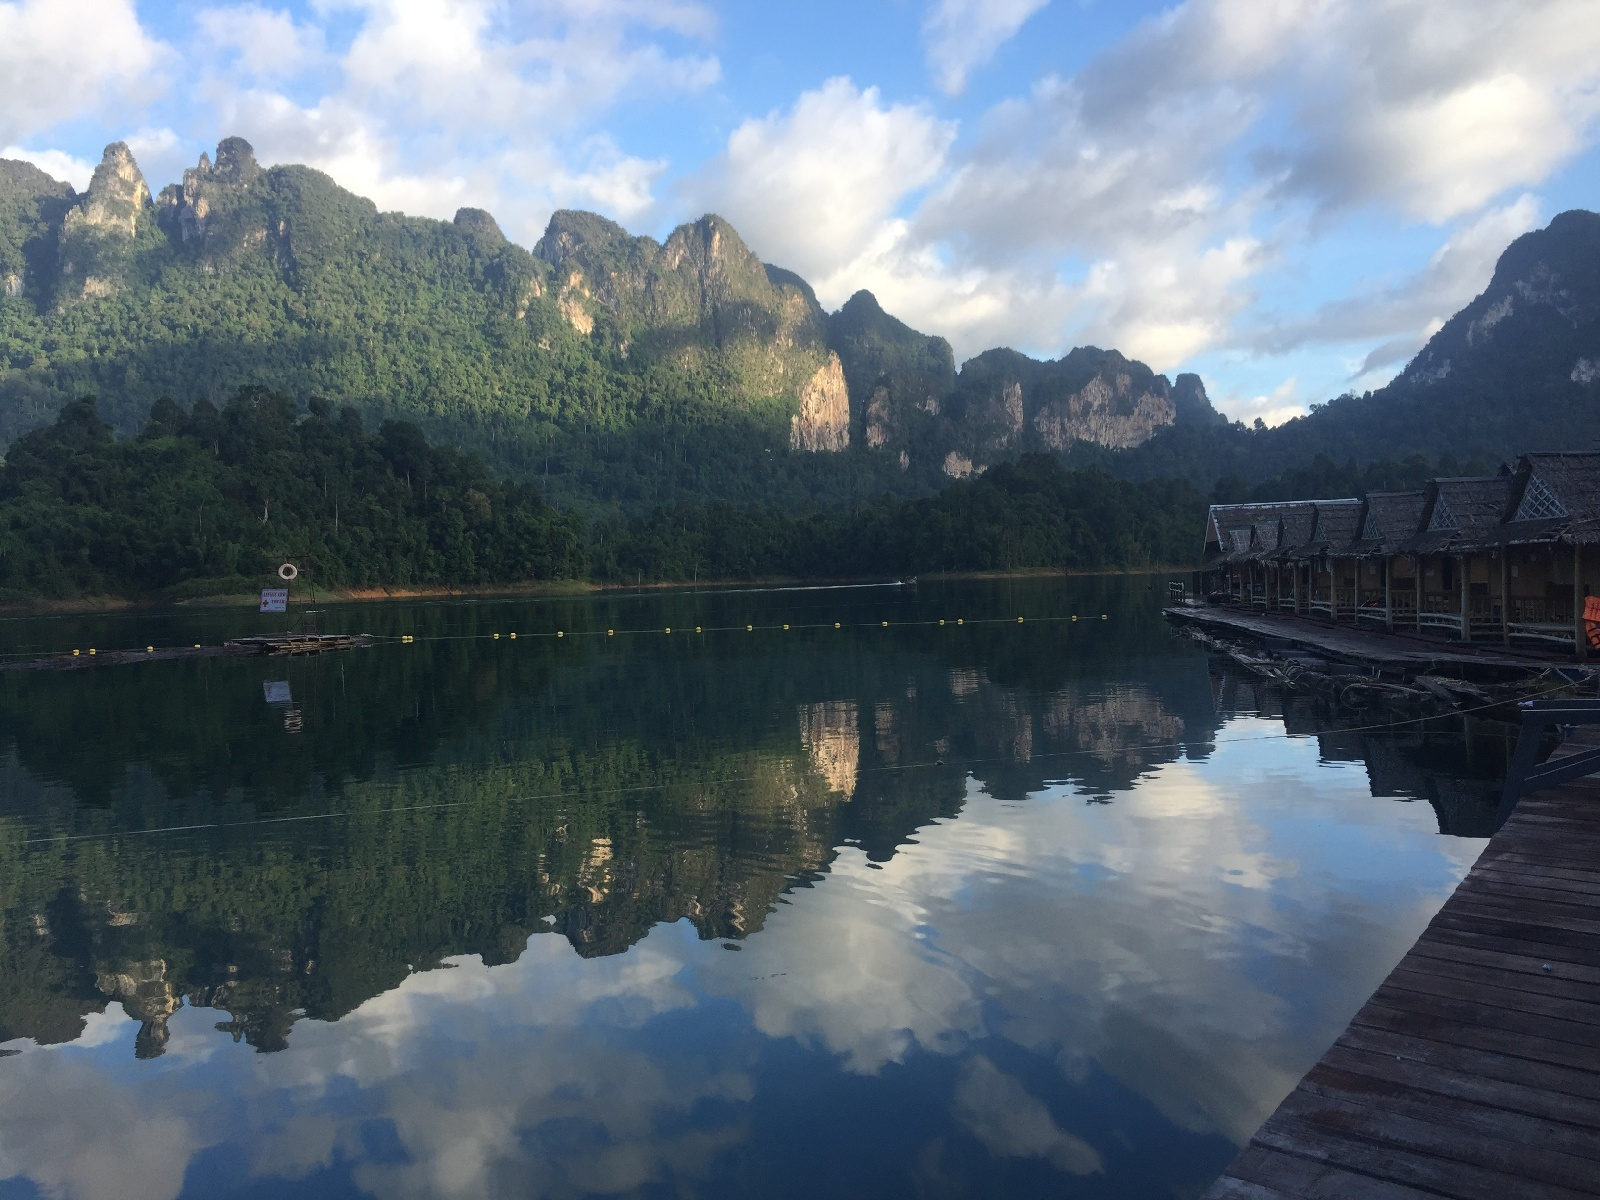 Overwater bungalows at Khao Sok National Park